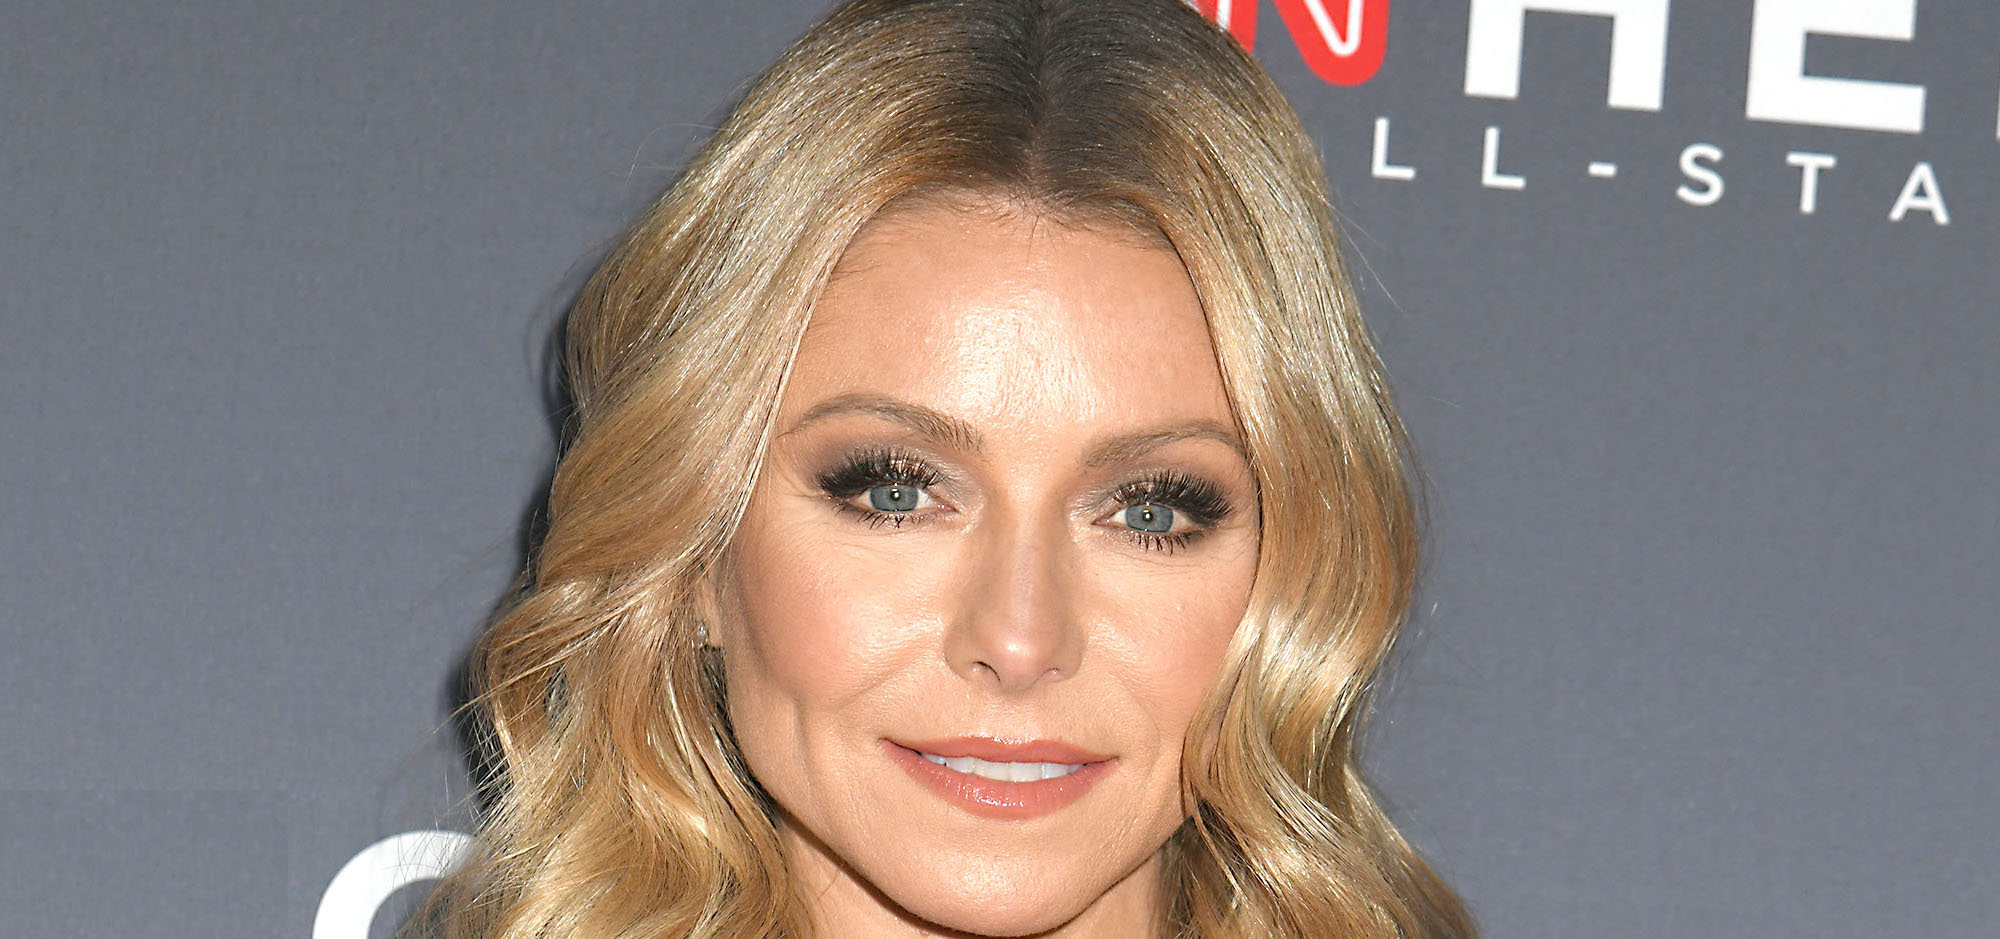 Kelly Ripa spends her down time watching 'Hoarders' with her kids